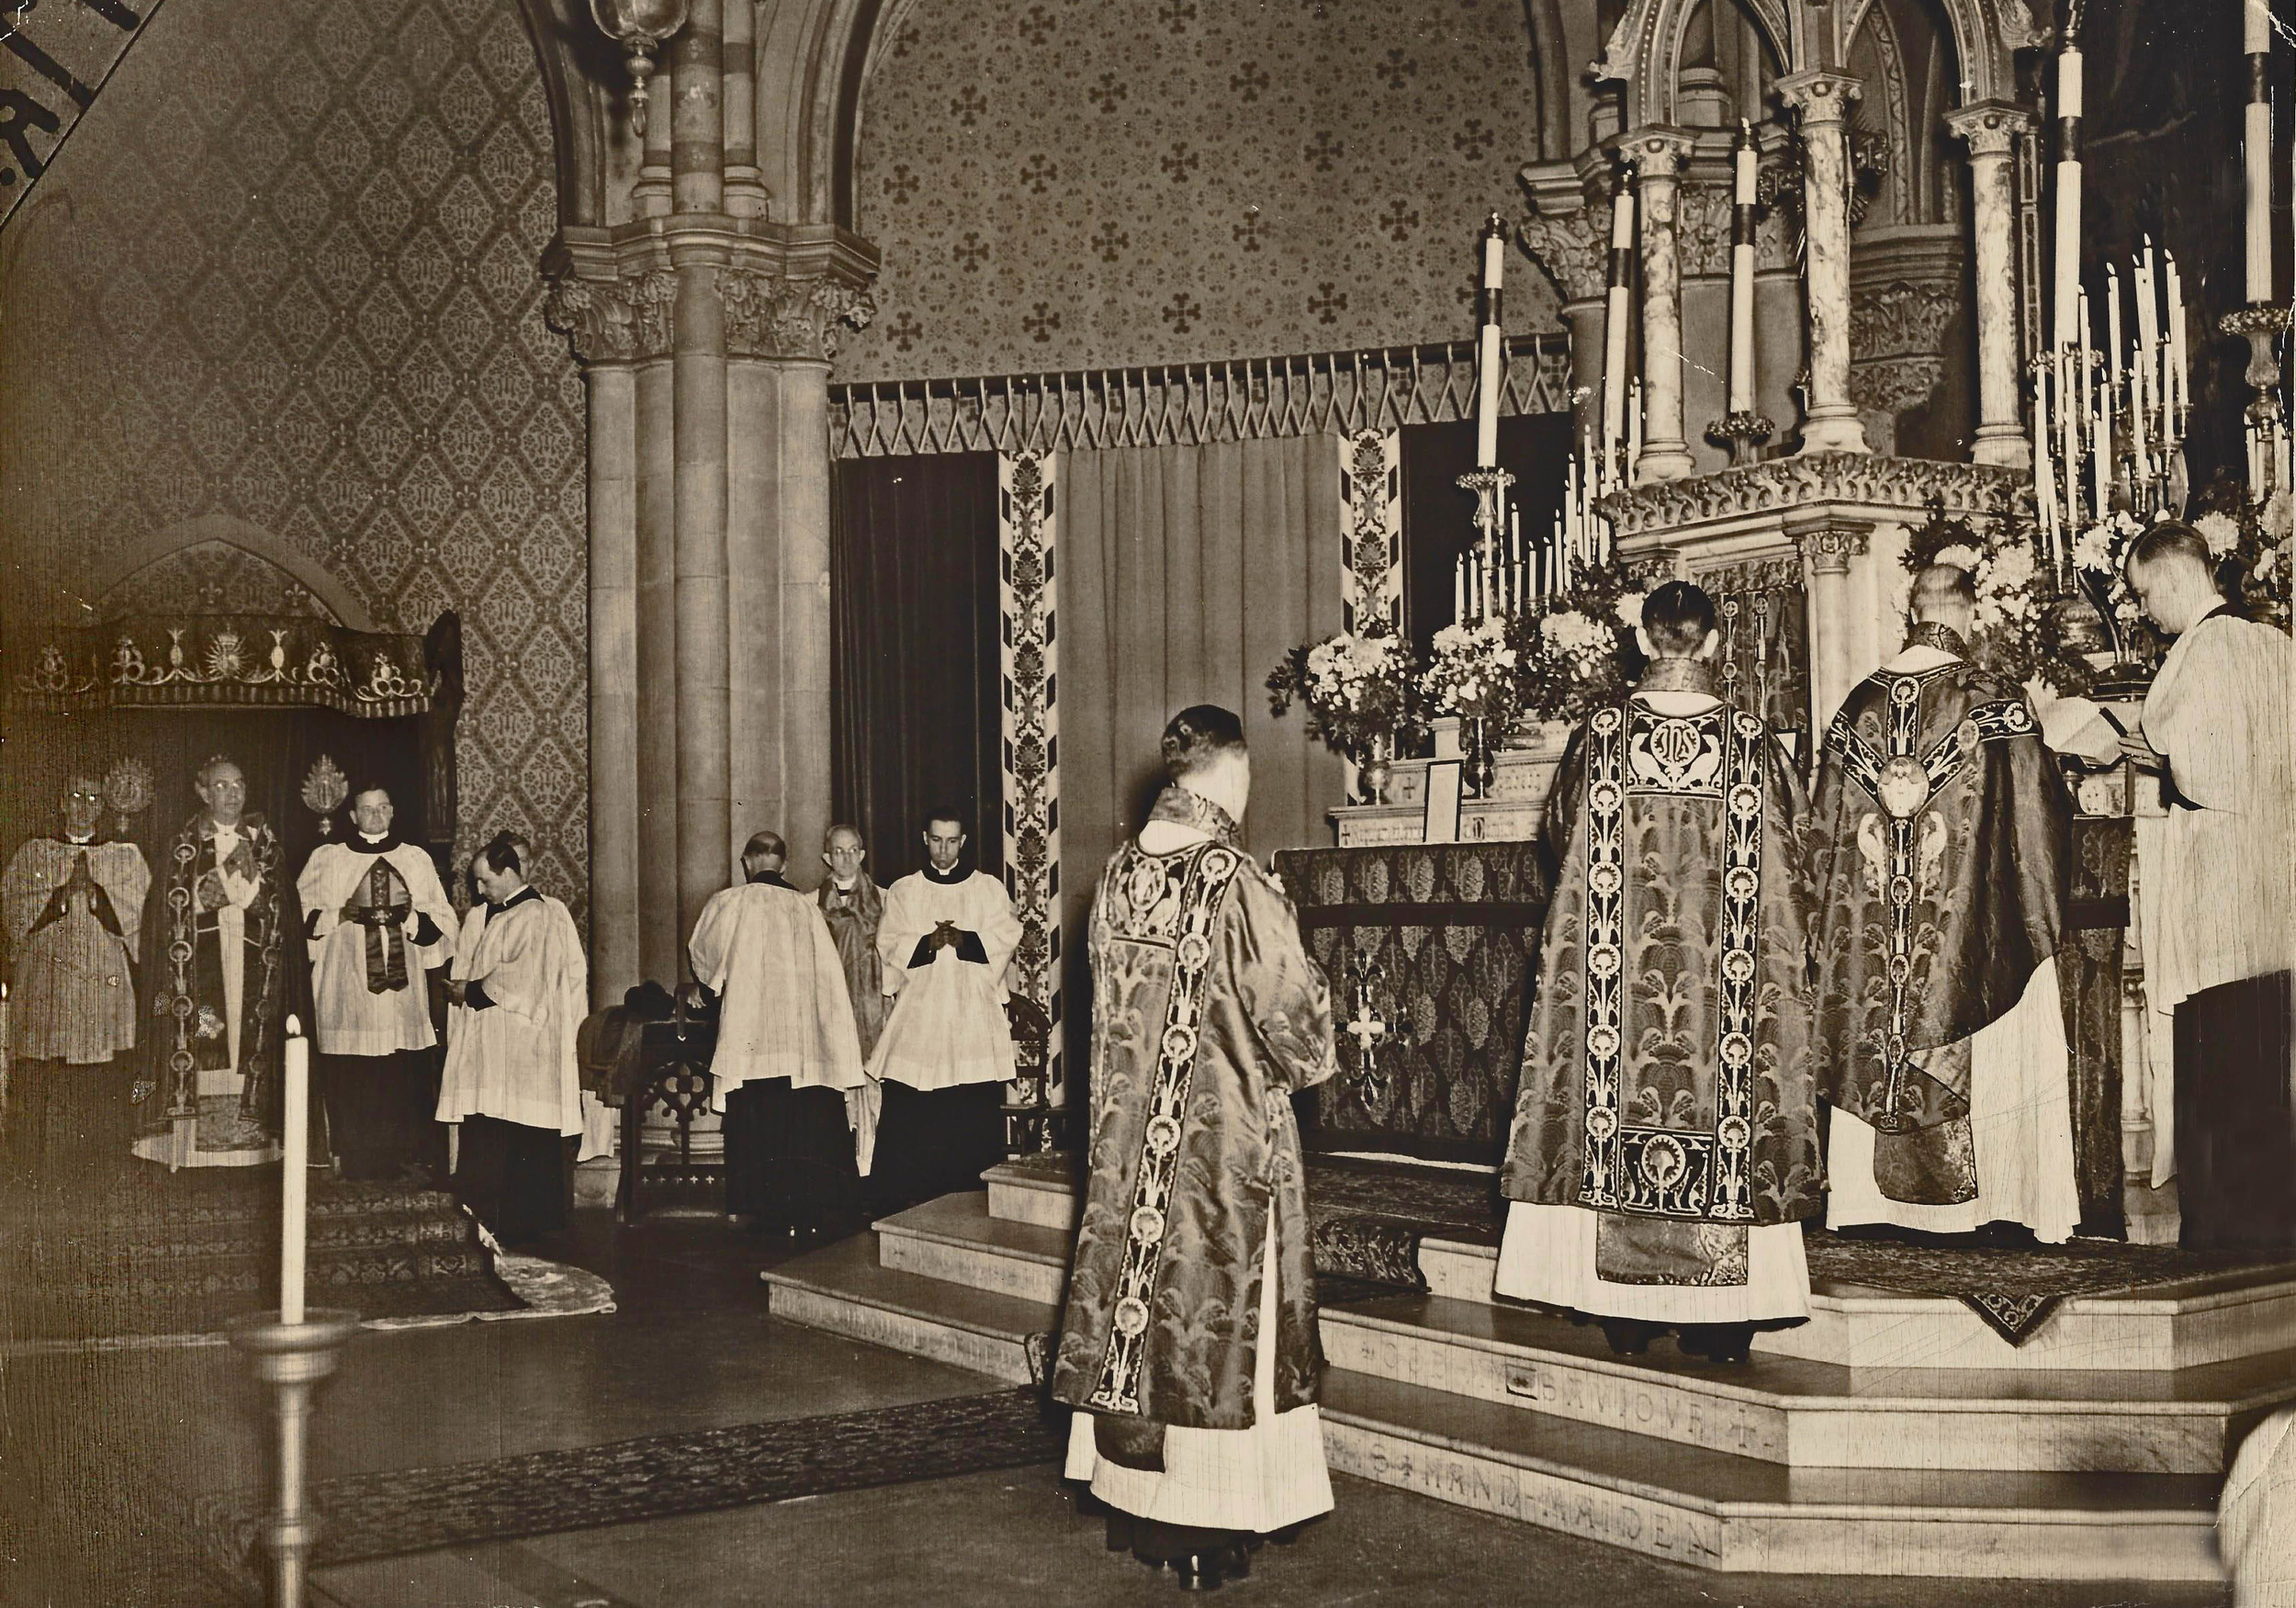 Solemn Mass with the Bishop of Long Island in the 1940s